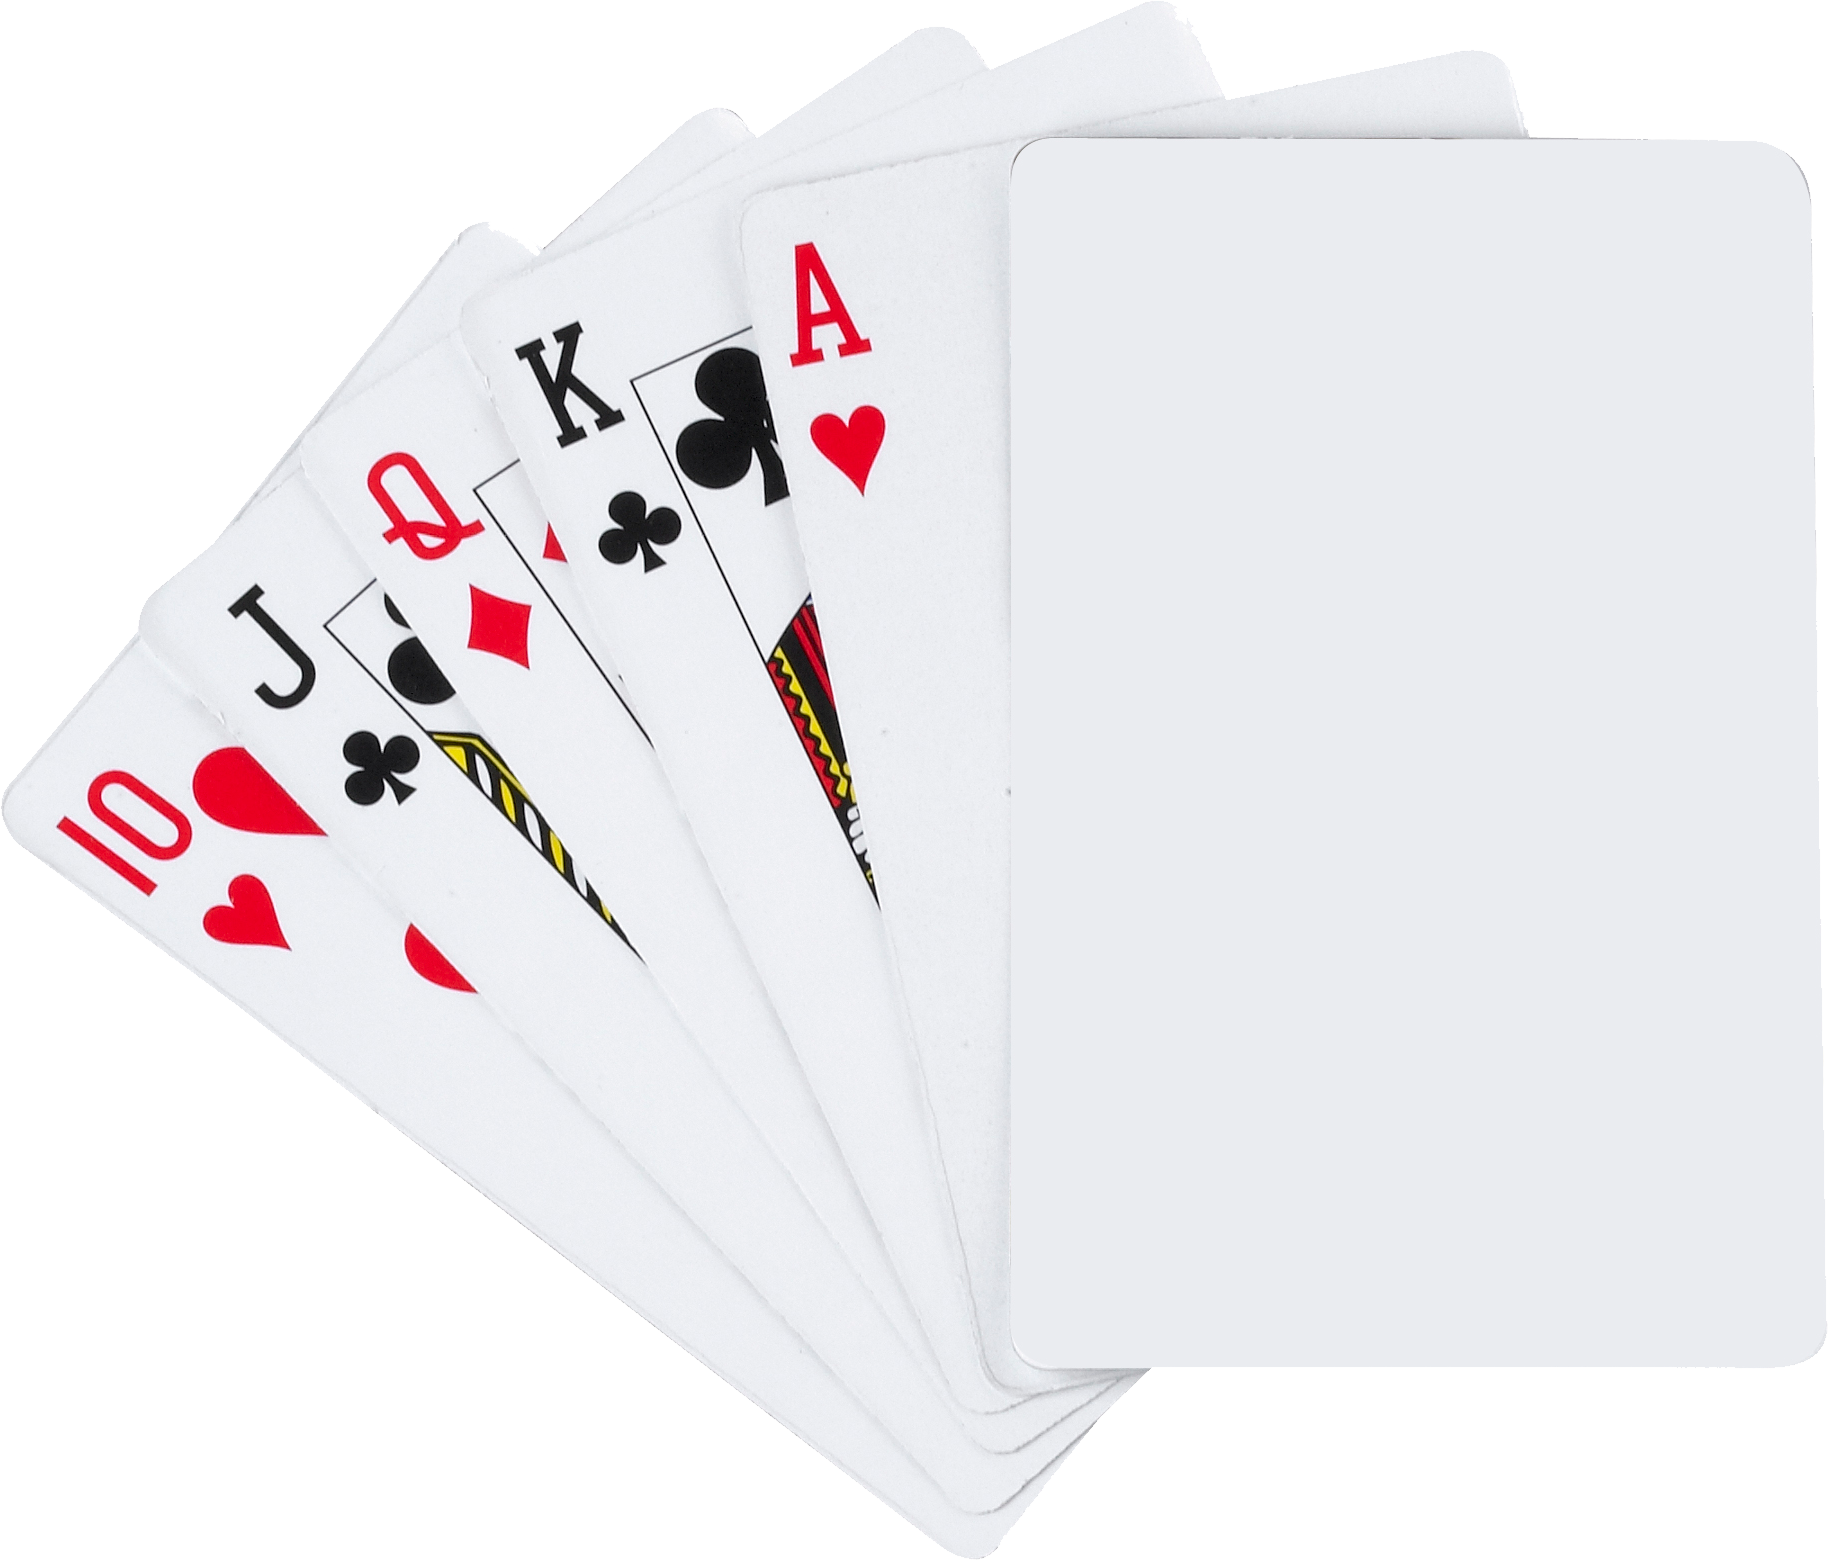 Cards png images free. Game clipart deck card